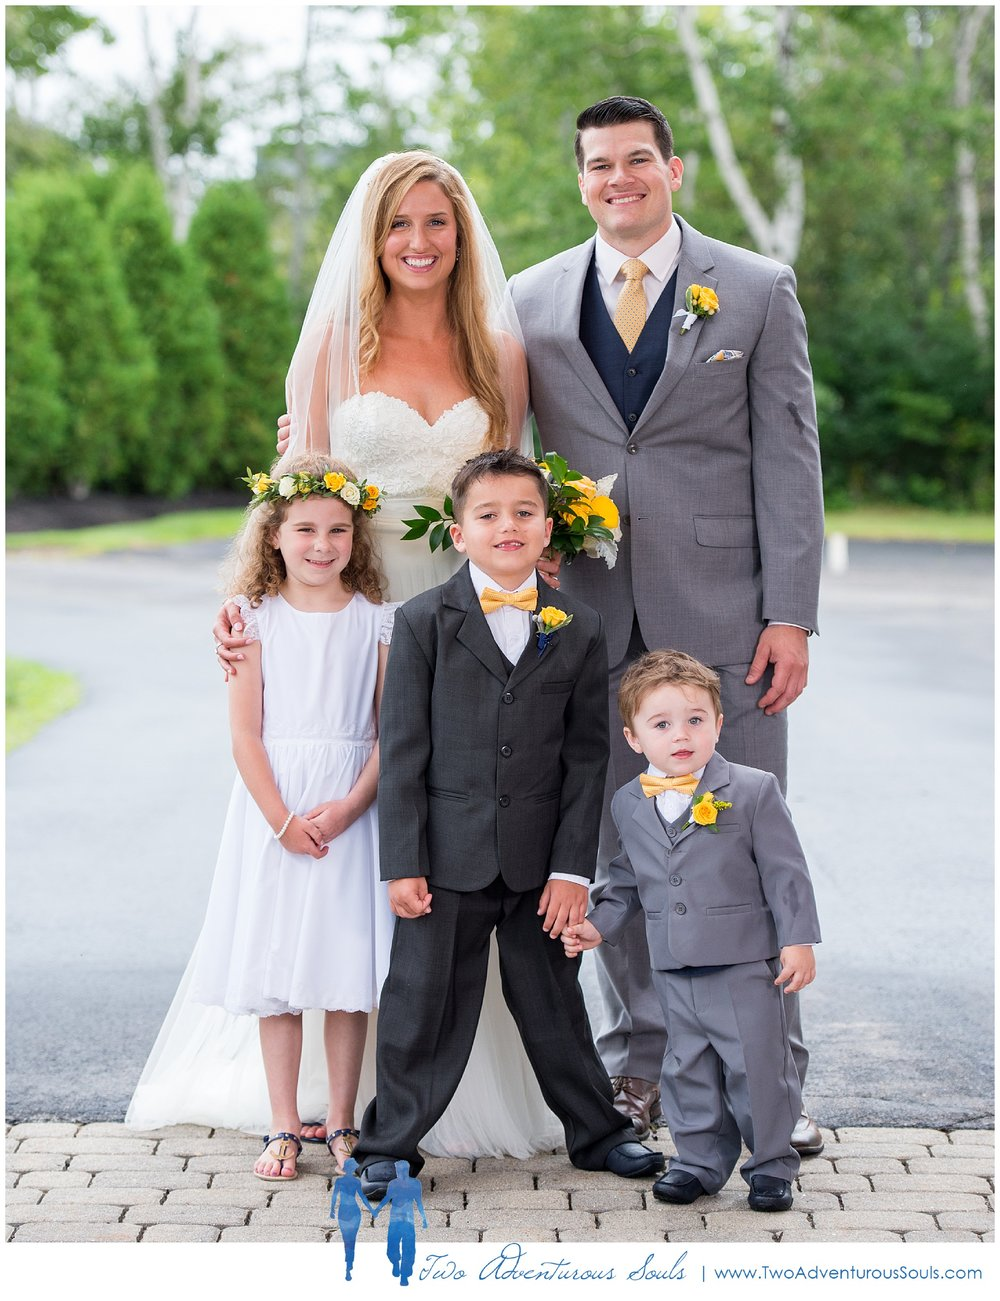 Wedding Day Family Portraits, Wedding Planning, Maine Wedding Photographers, Two Adventurous Souls_WDFPP_0003.jpg